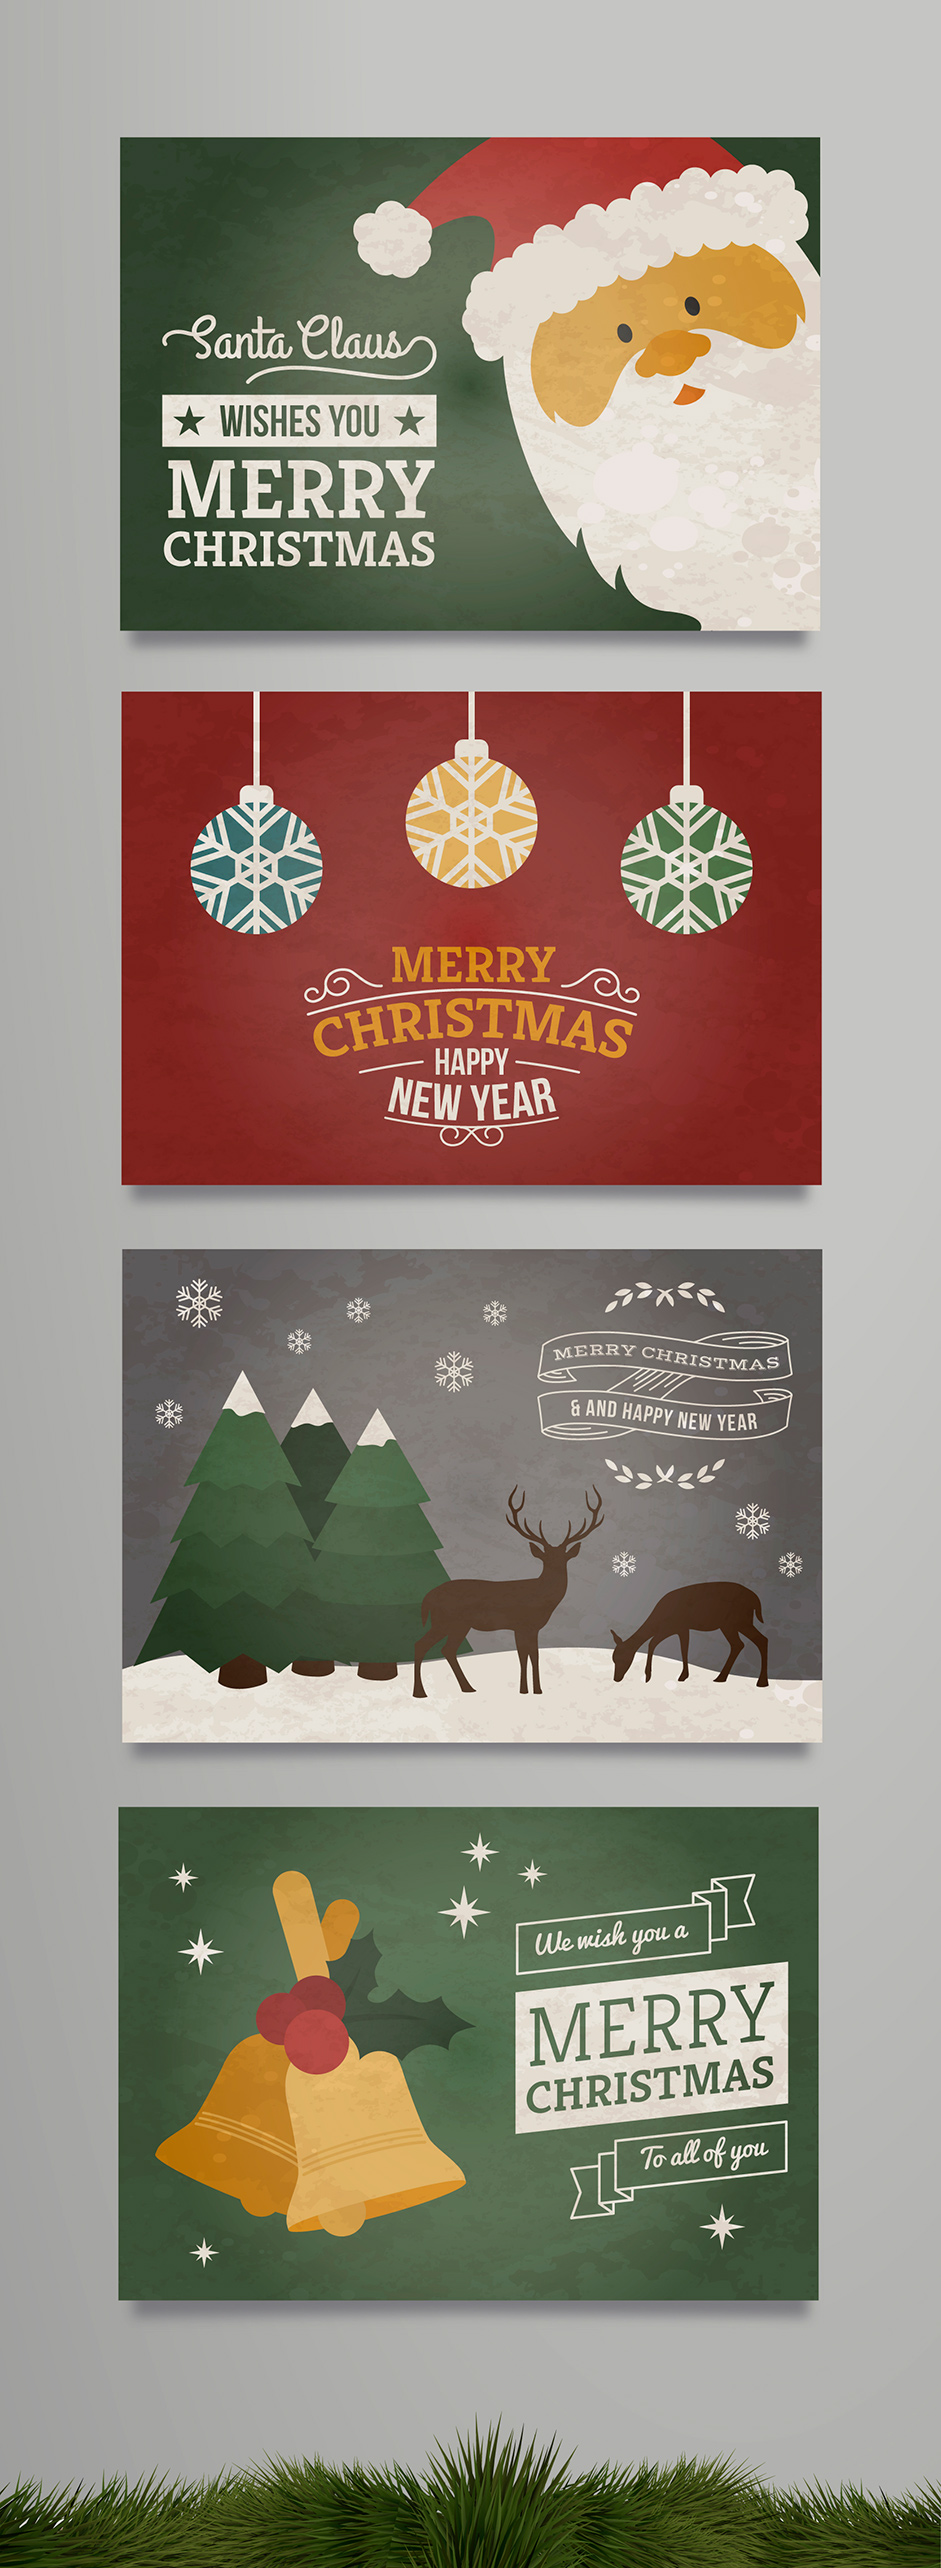 10 New Xmas Cards From Freepik And More Free Resources For